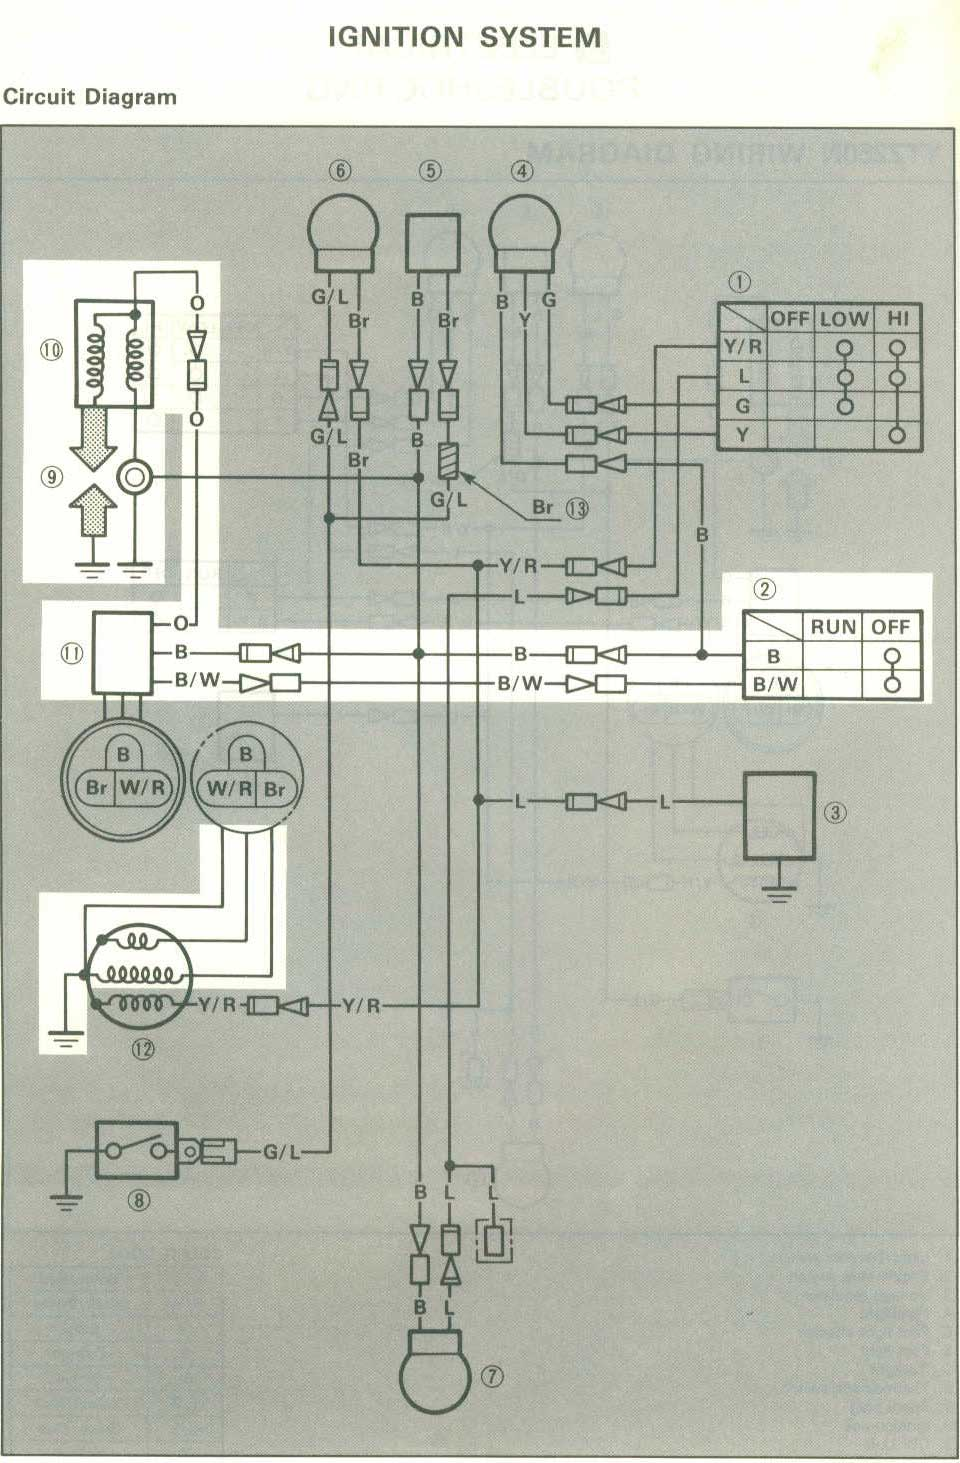 medium resolution of yamaha xt200 wiring diagram wiring diagram details yamaha xt200 wiring diagram